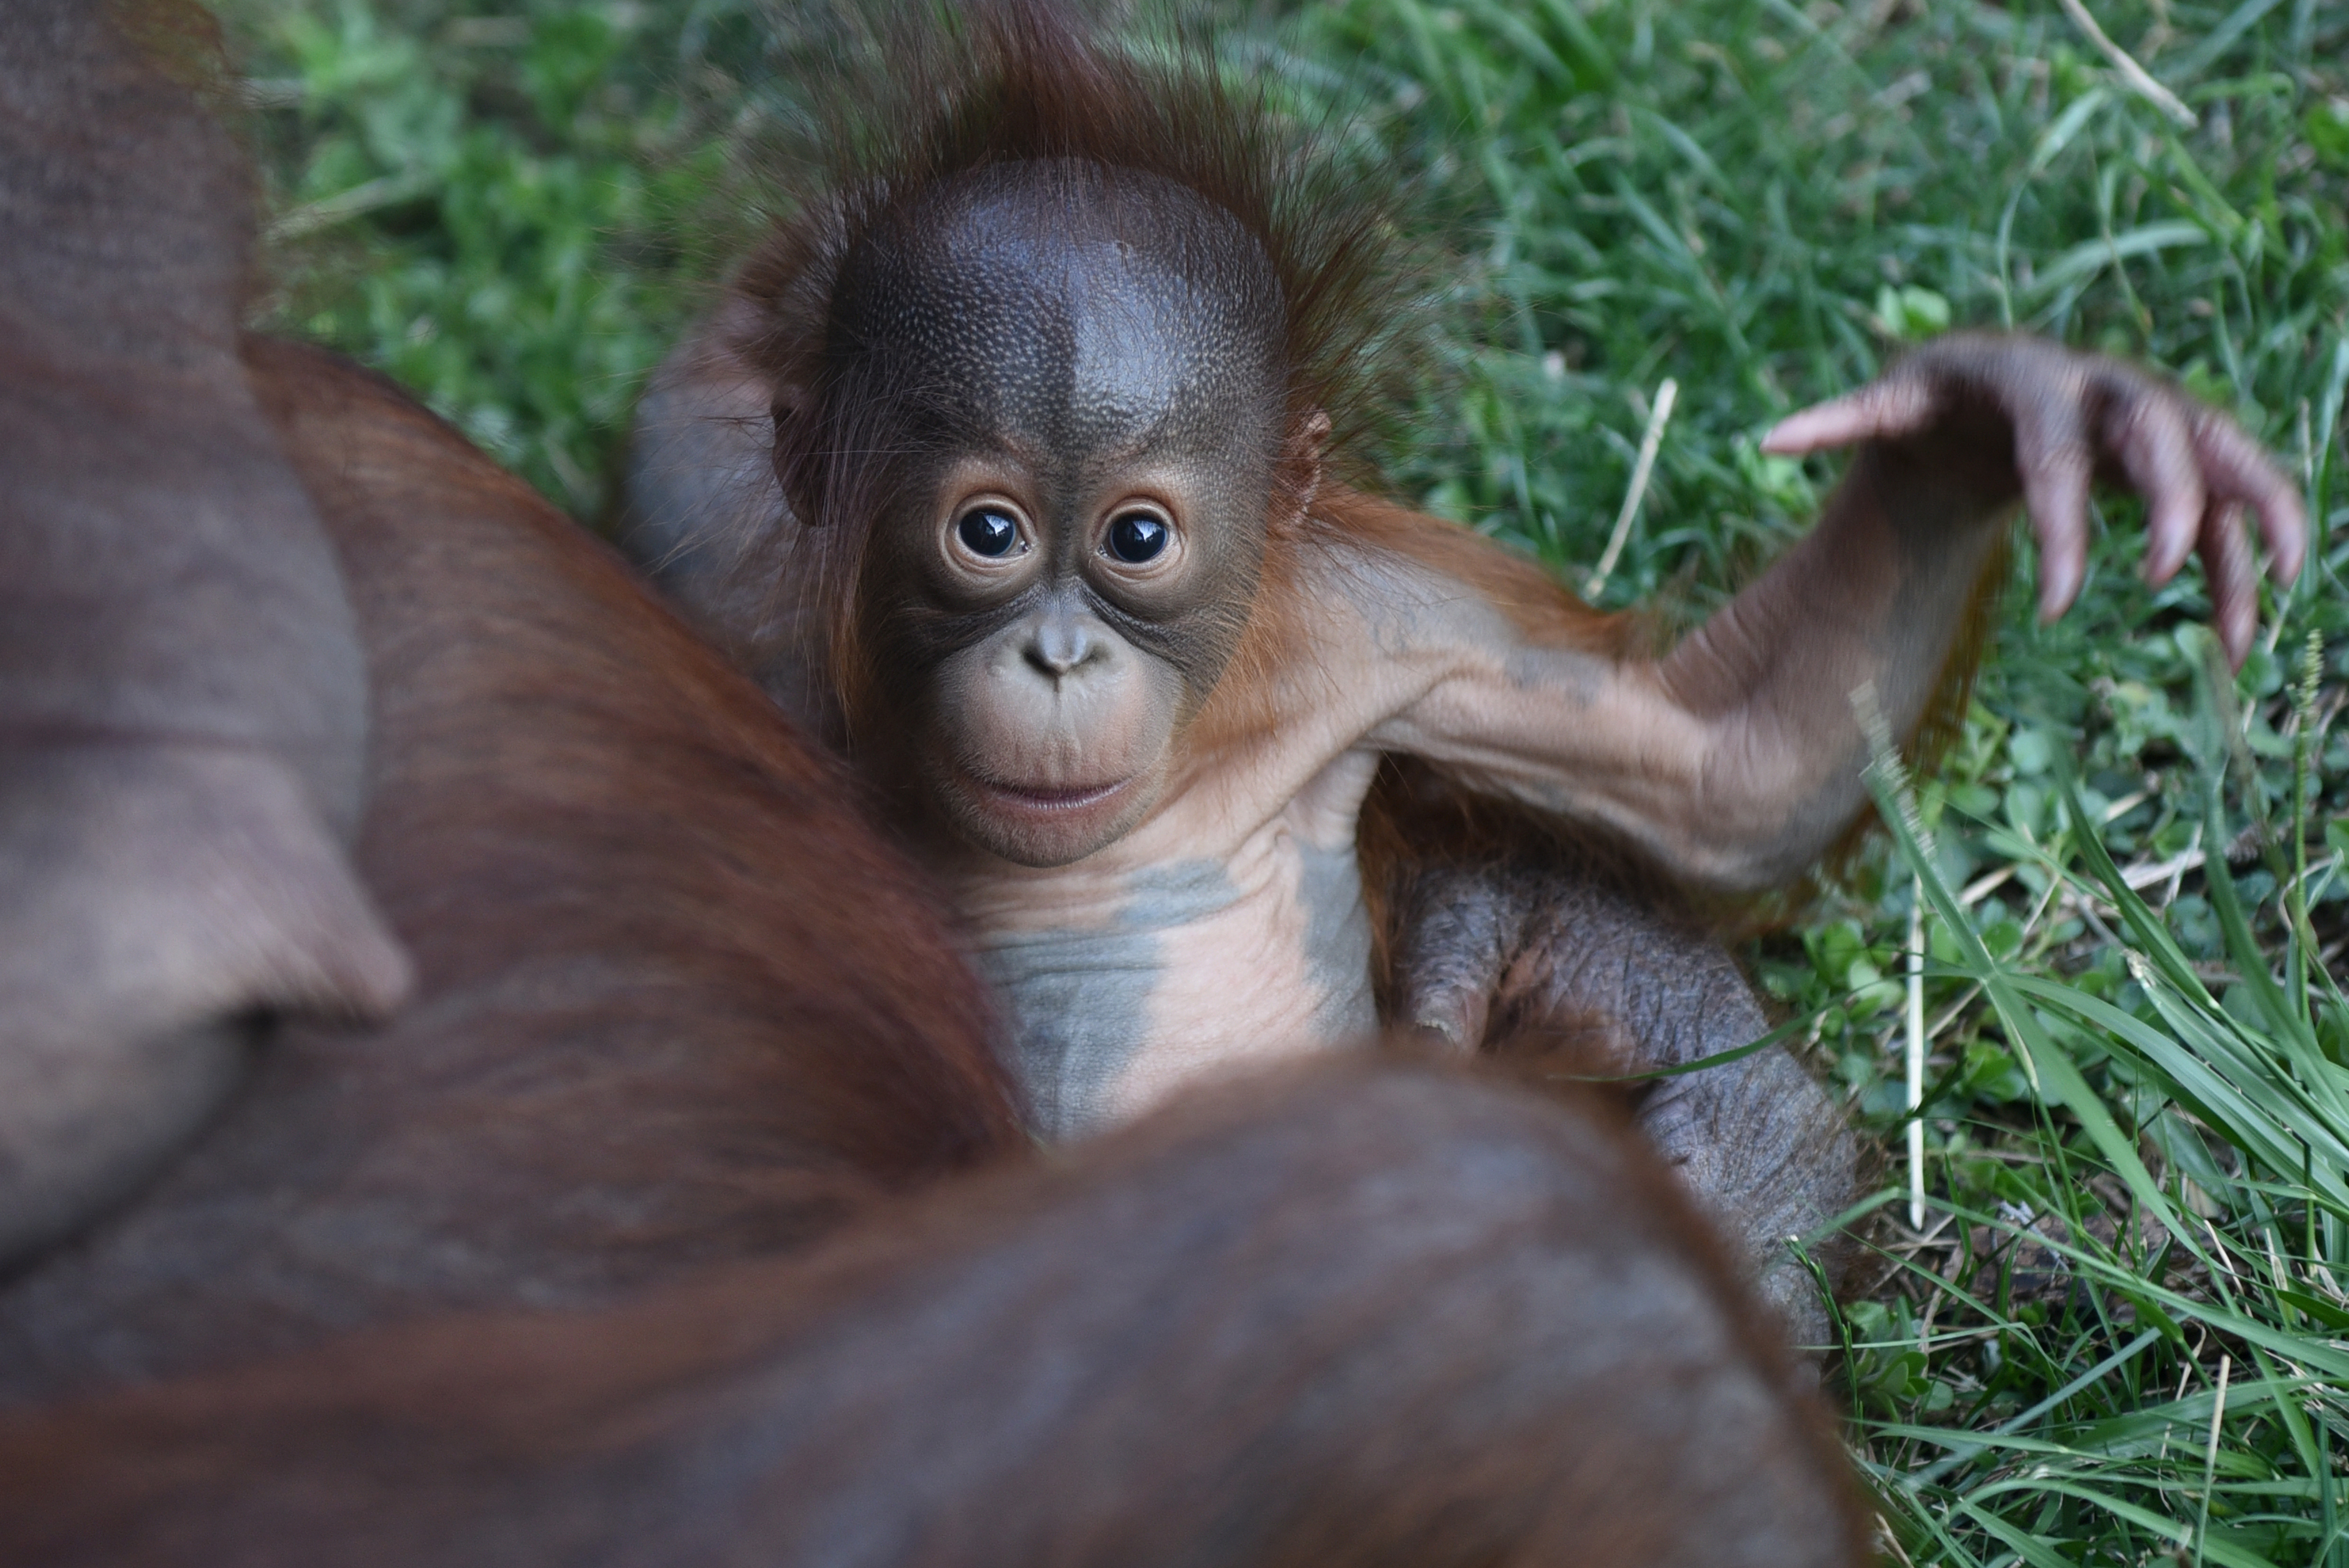 The baby Bornean orangutan pictured playing with her mother